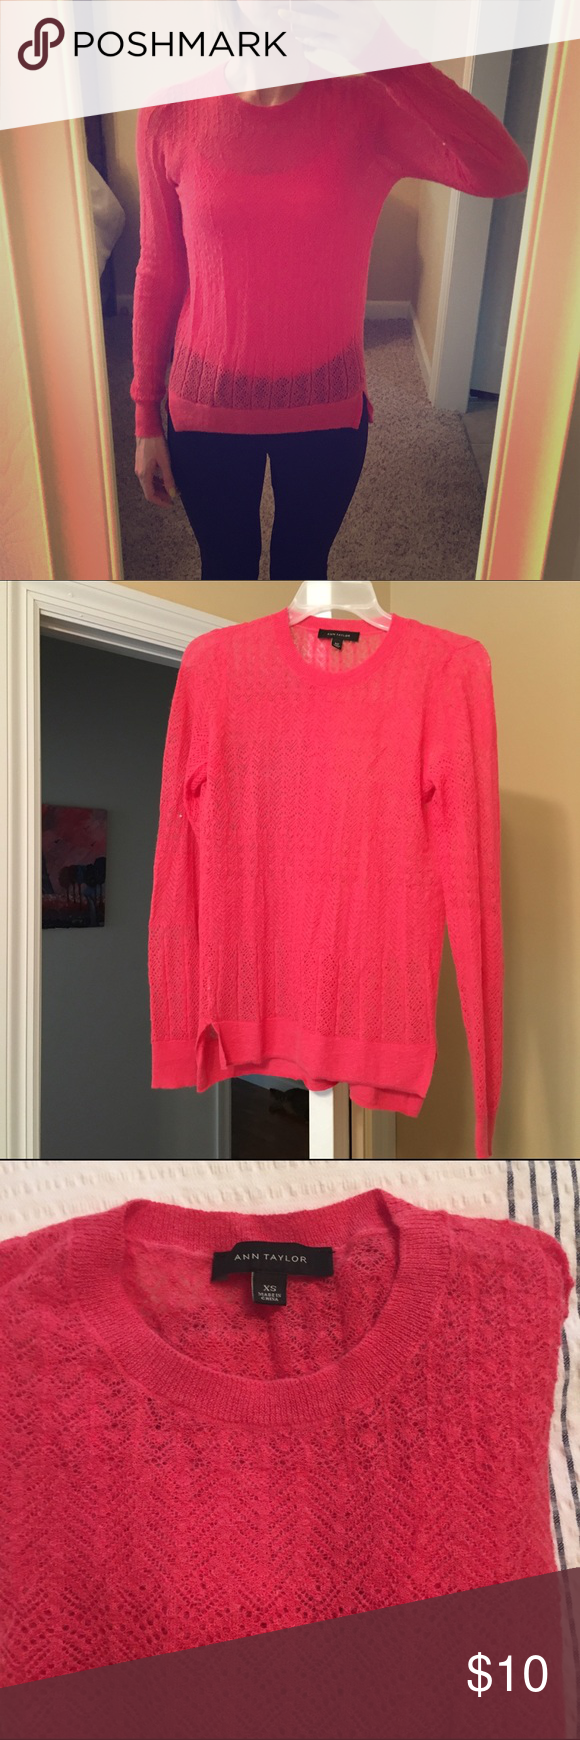 Ann Taylor pink light sheer sweater Good condition, hardly worn Ann Taylor Sweaters